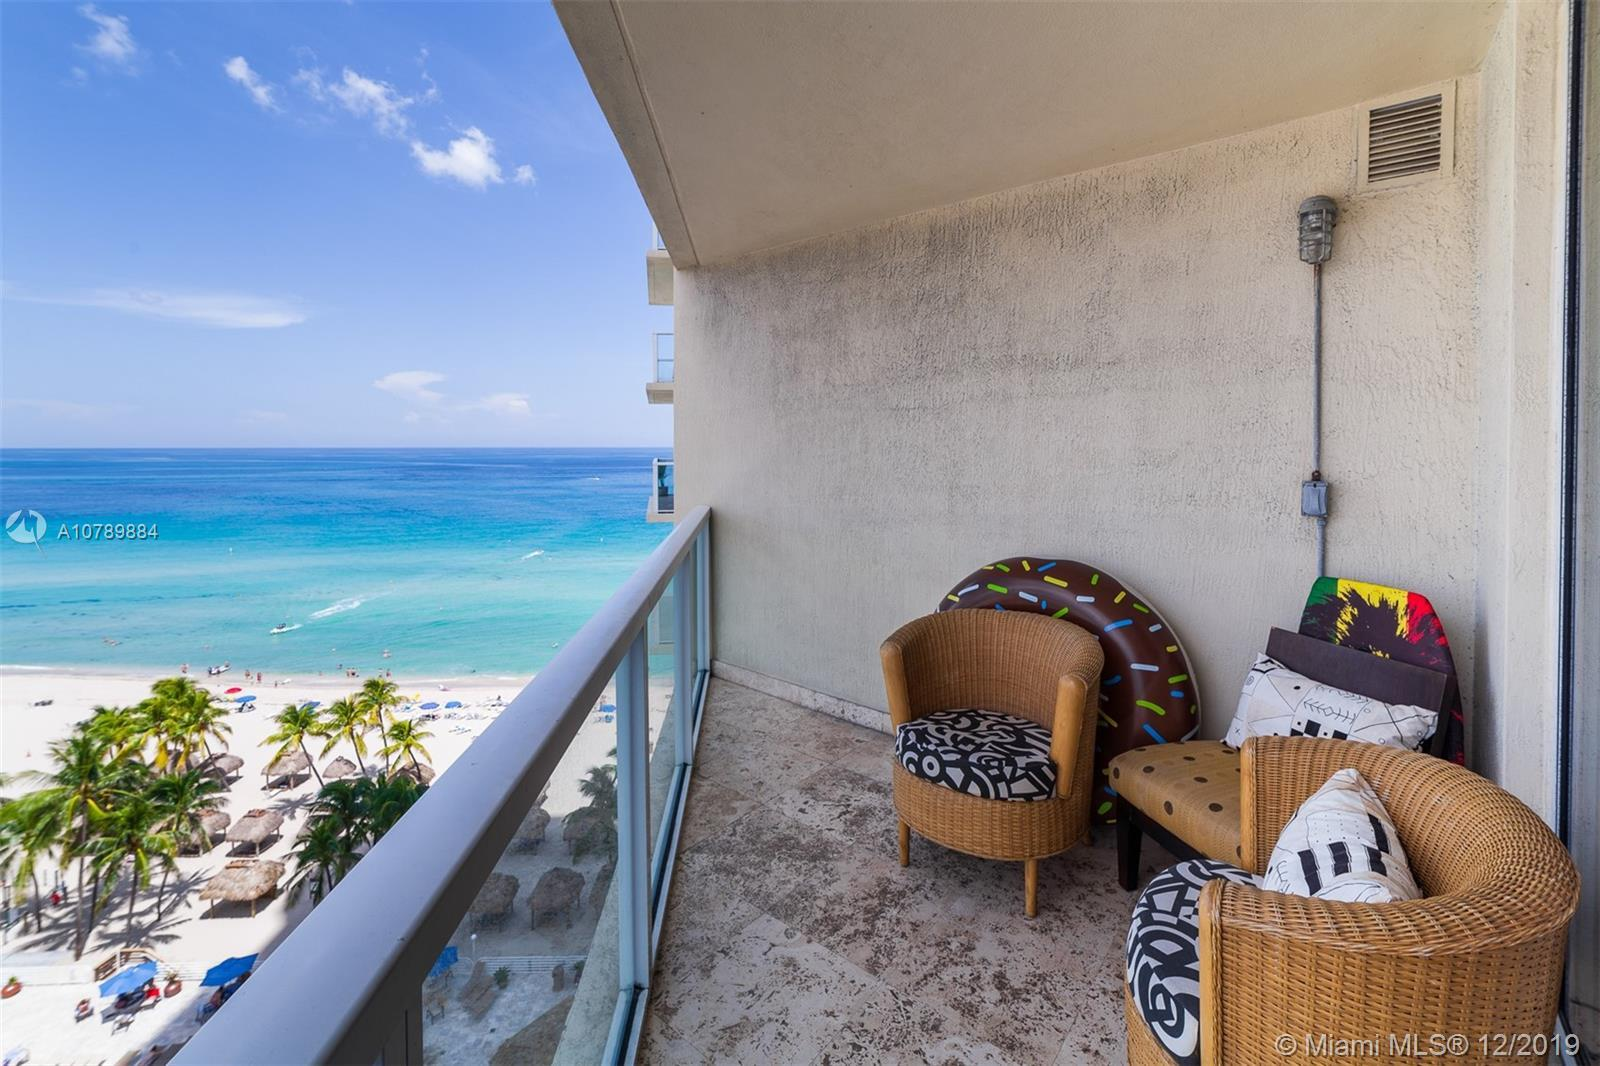 La Perla is a great 5-star pet-friendly and investor-friendly beachfront building and allows 12 time